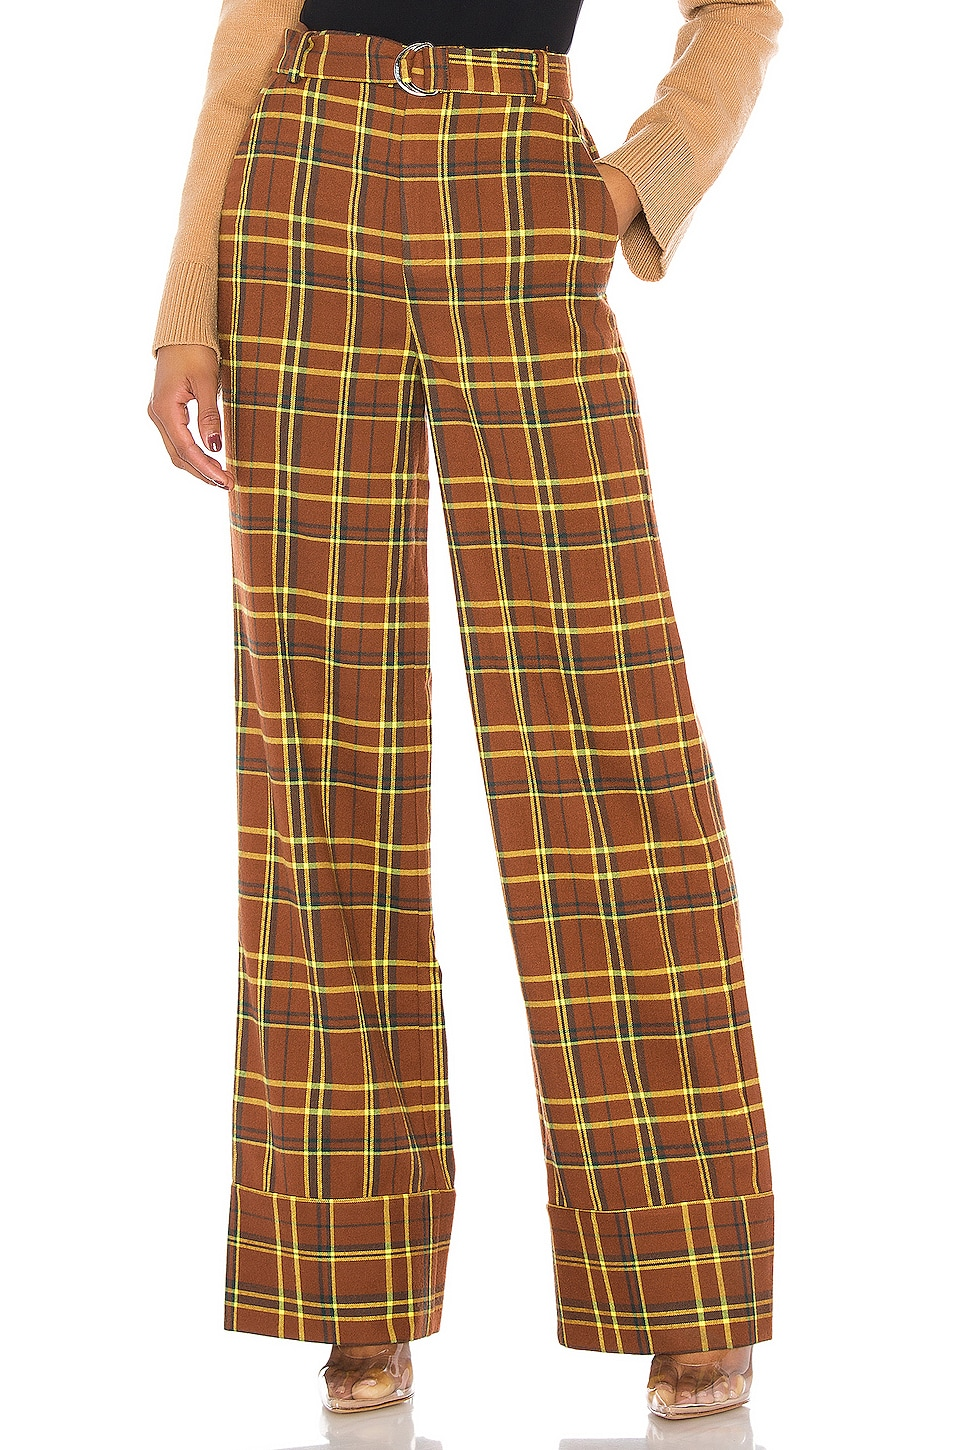 h:ours Brooklyn Trousers in Brown Plaid